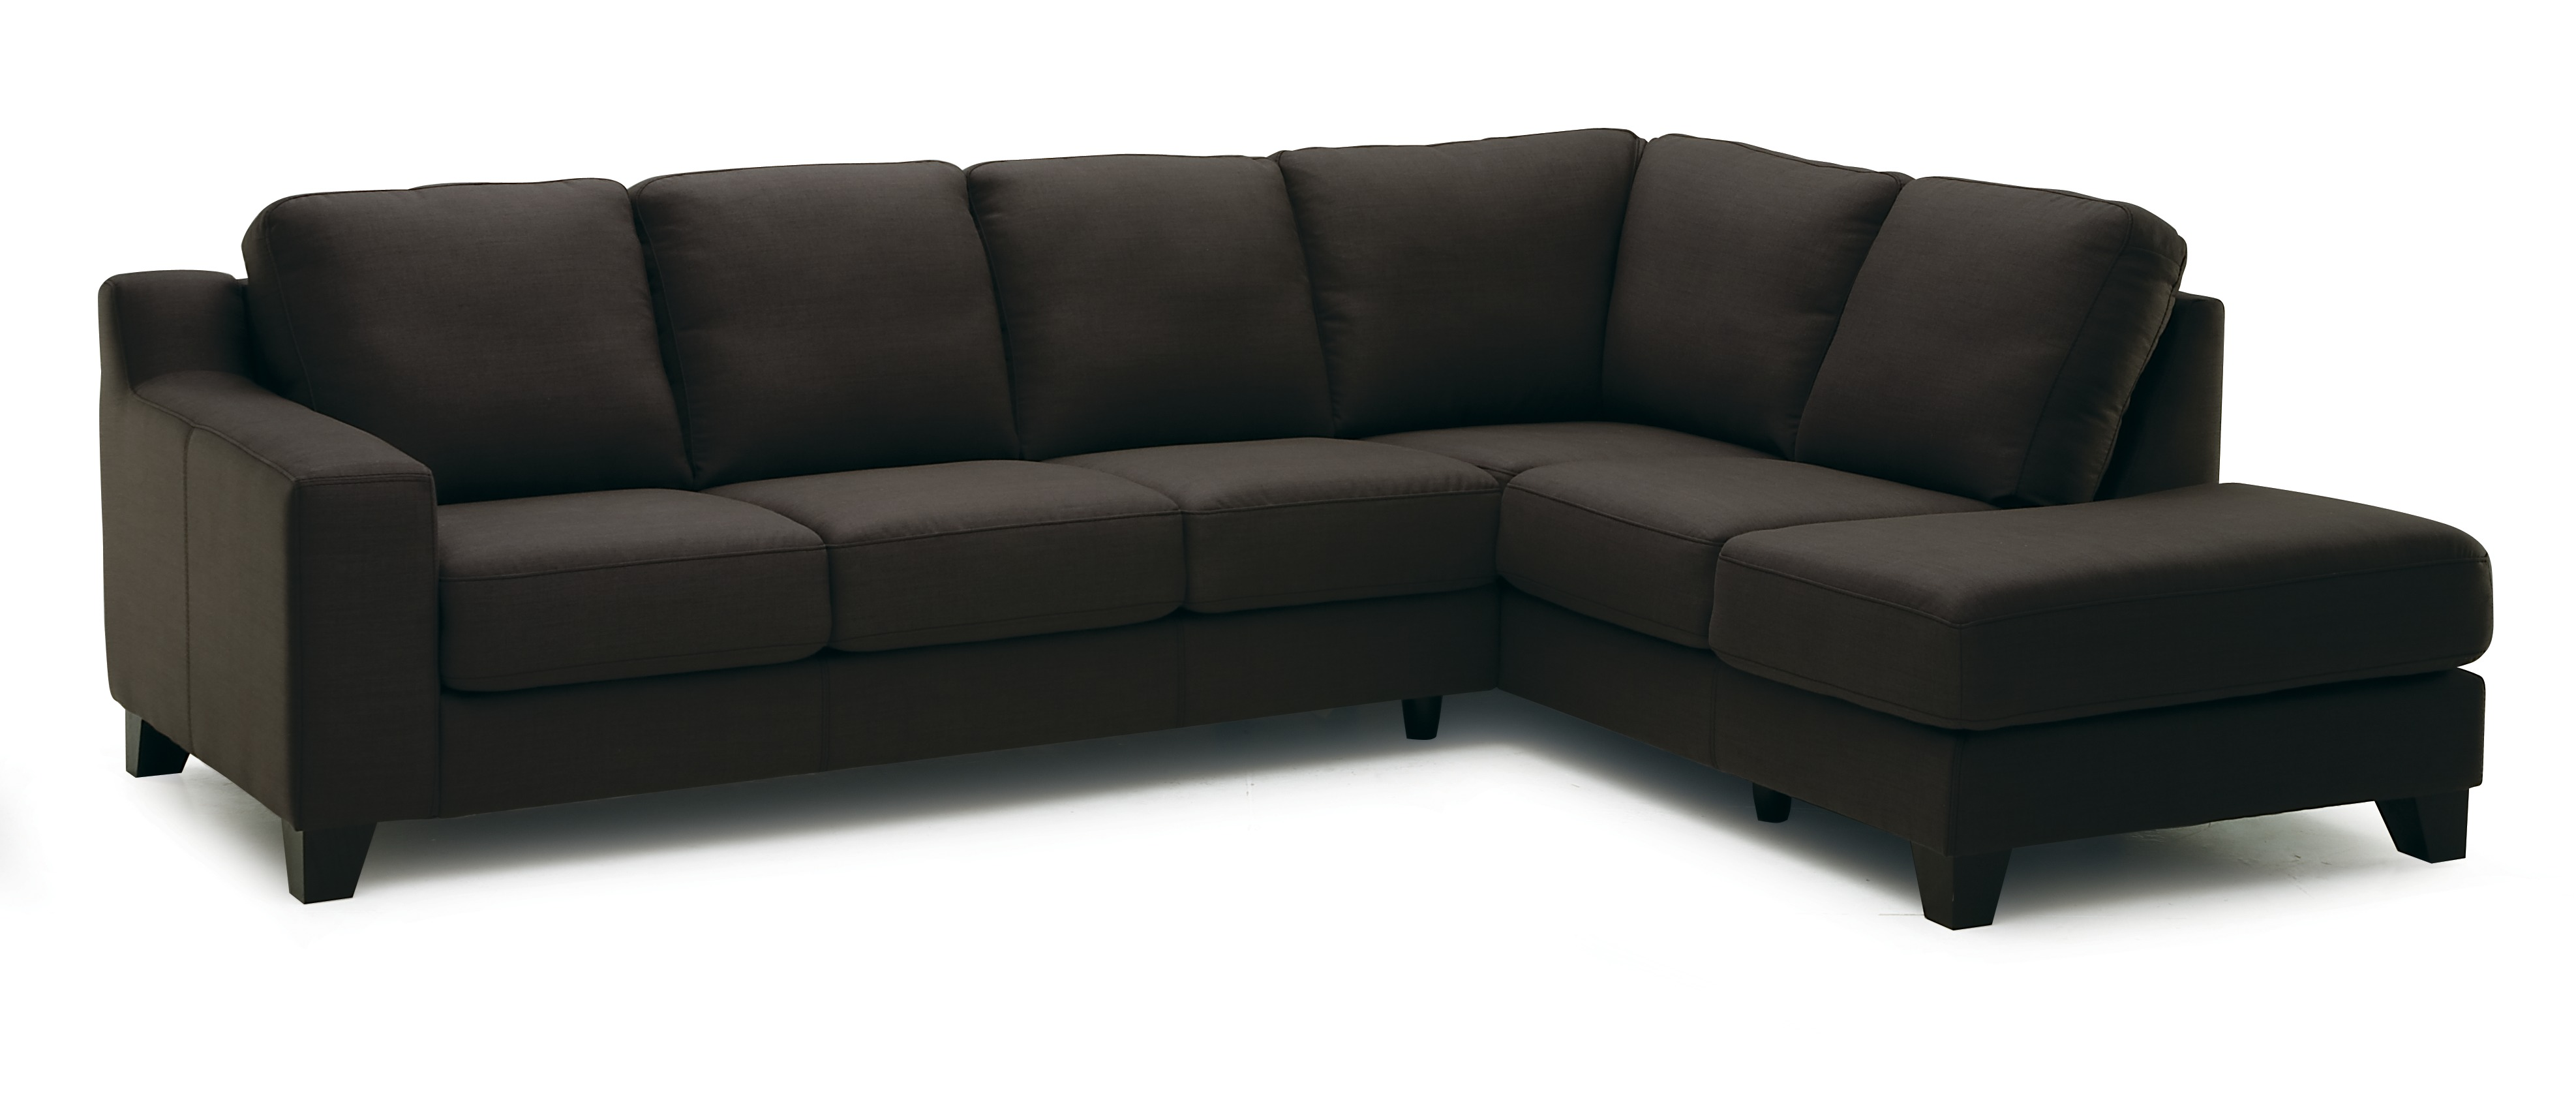 Reed 77289 70289 Sectional 350